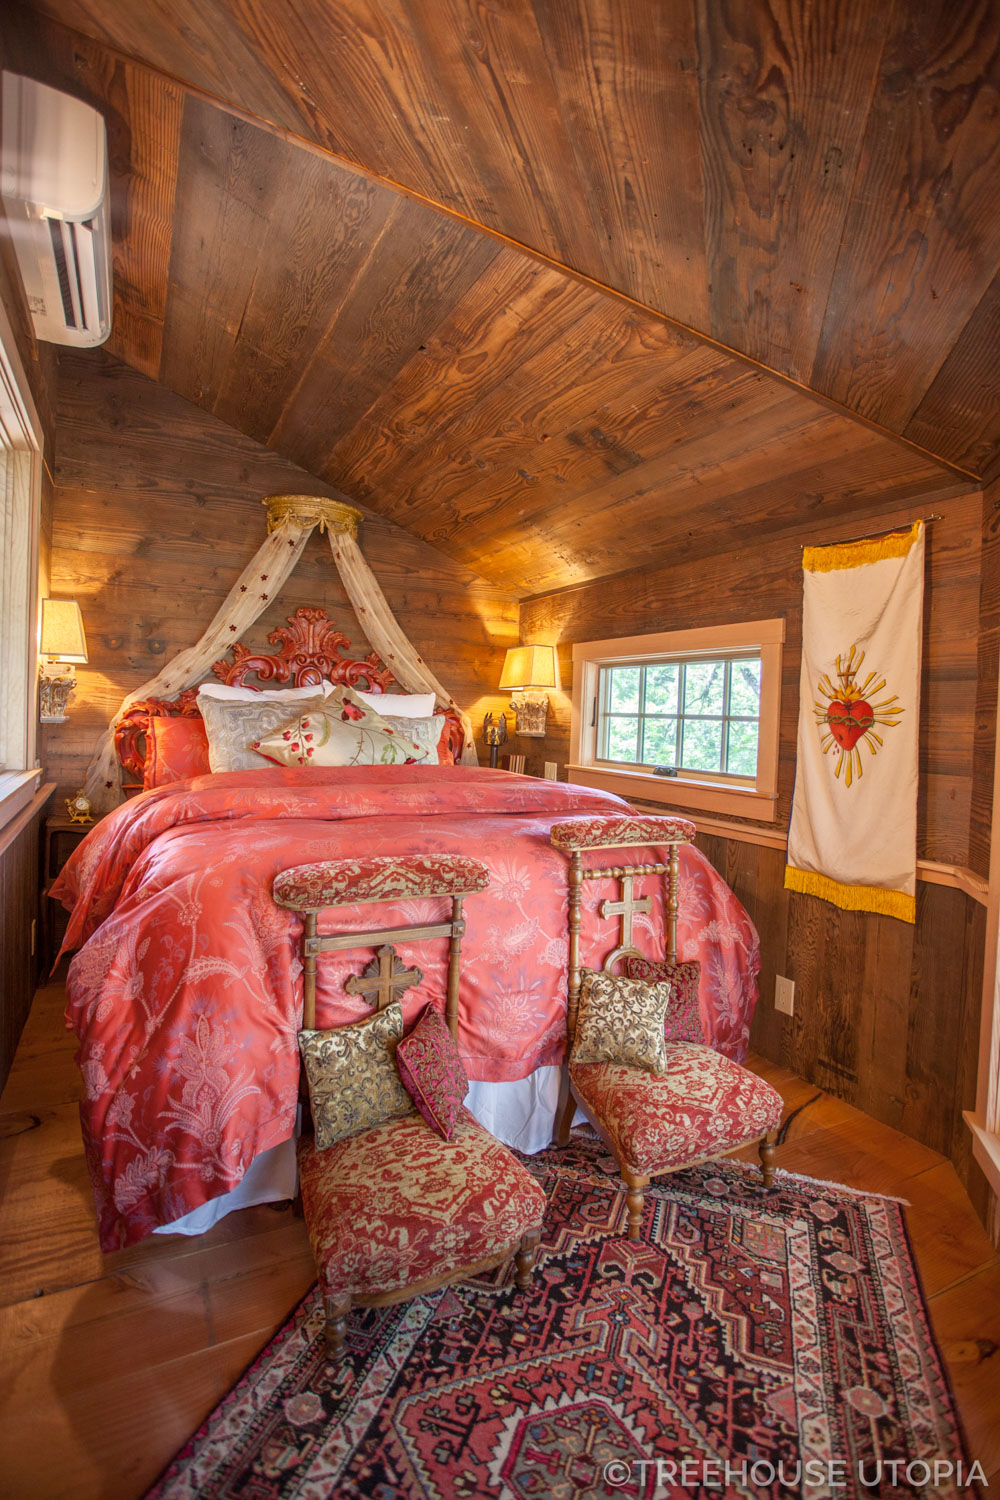 Bedroom inside Chapelle at Treehouse Utopia, a Texas Hill Country Retreat. Photo by Nelson Treehouse.